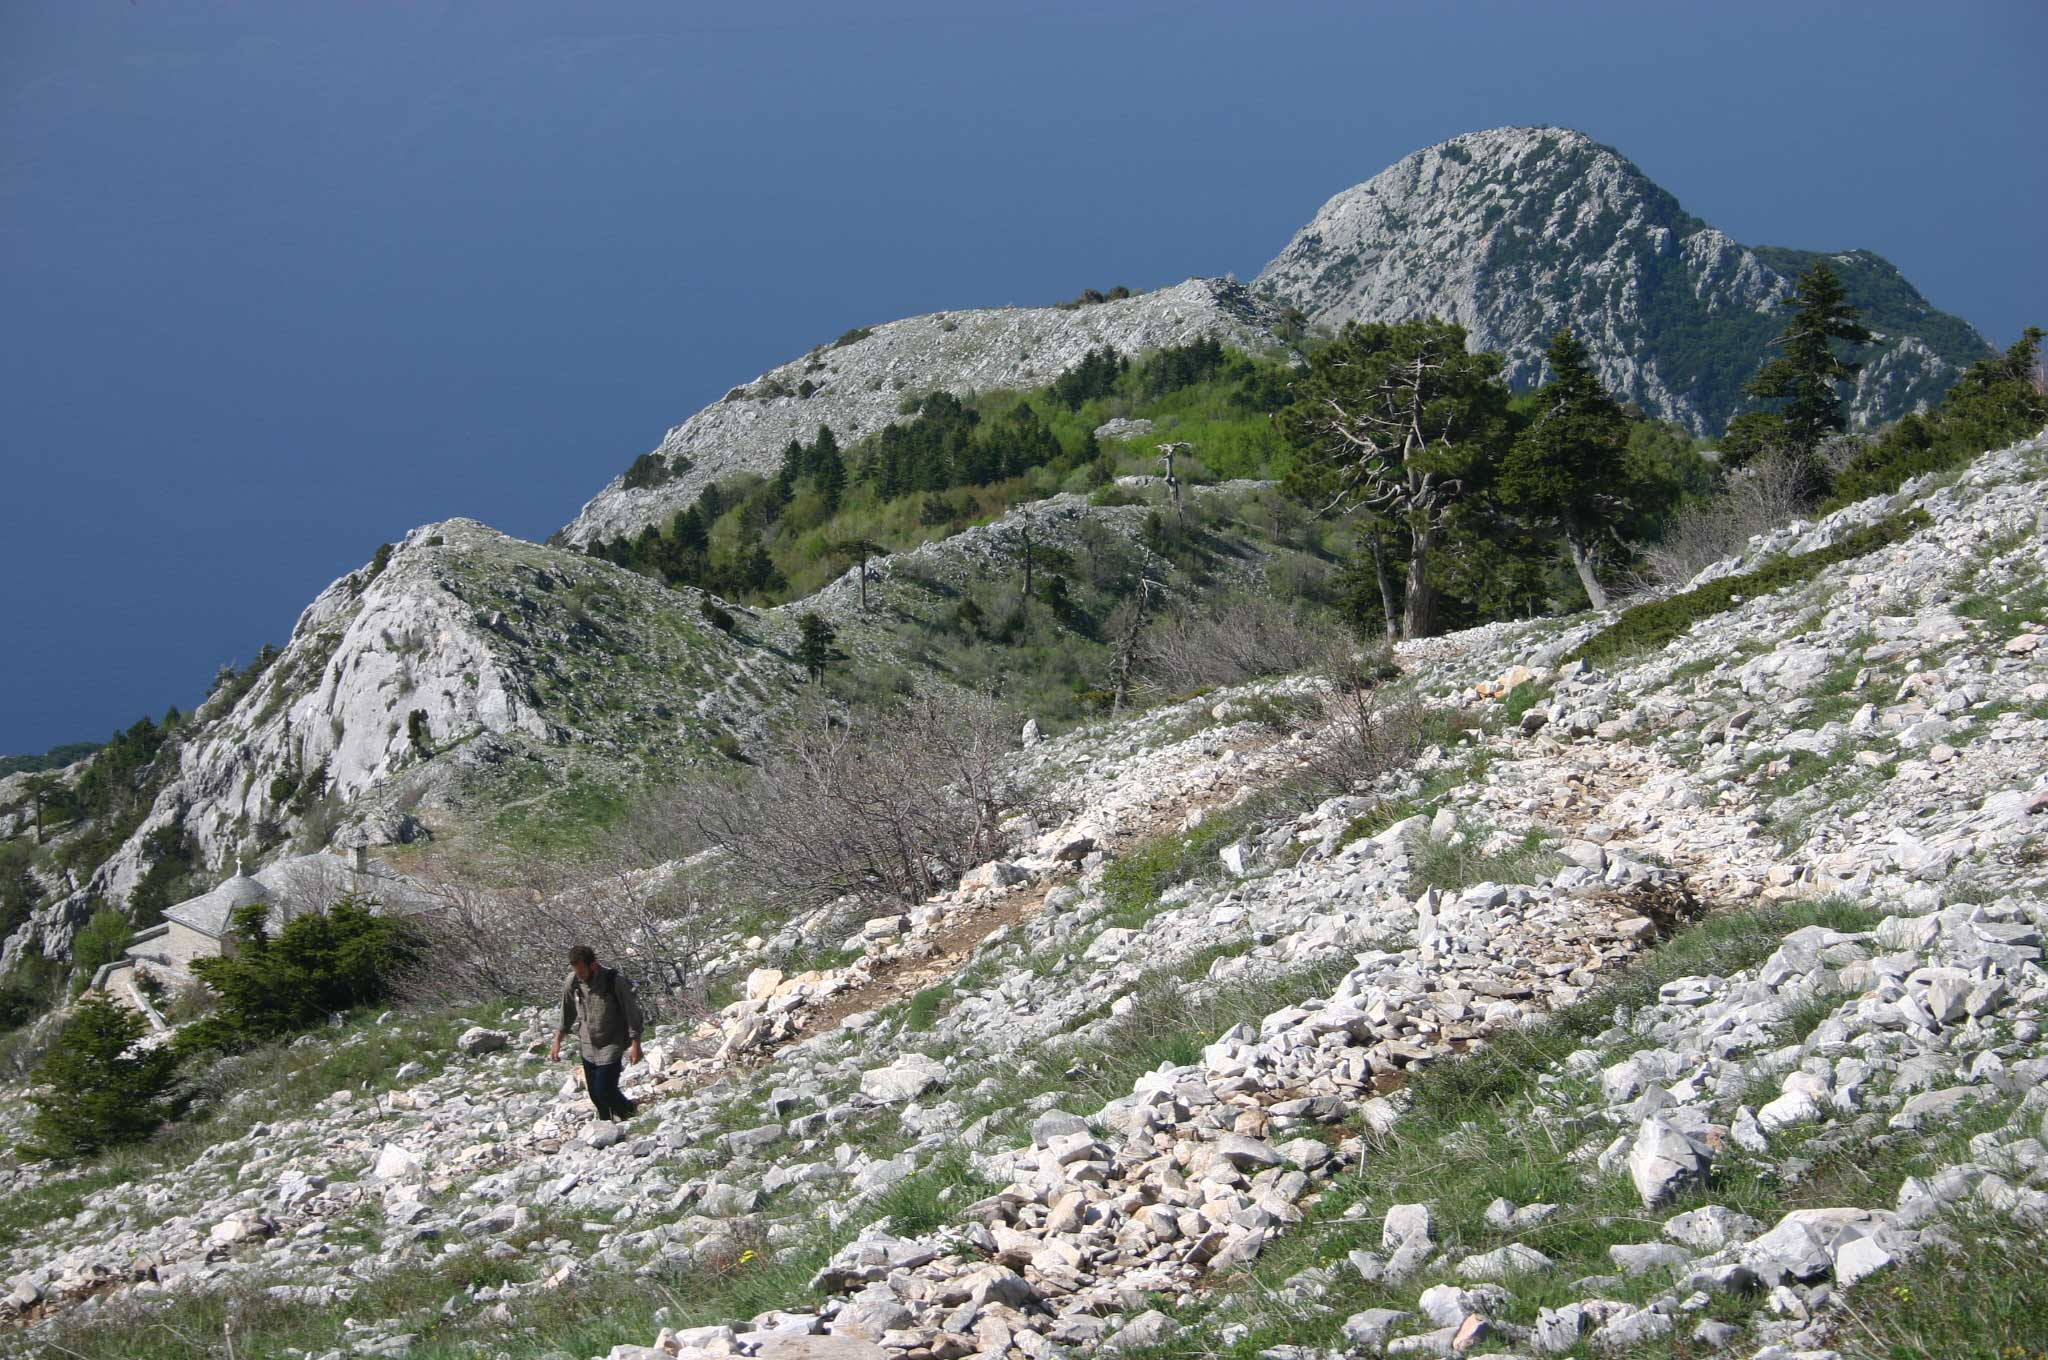 Mt Athos - Above Panaghias - © William Mackesy